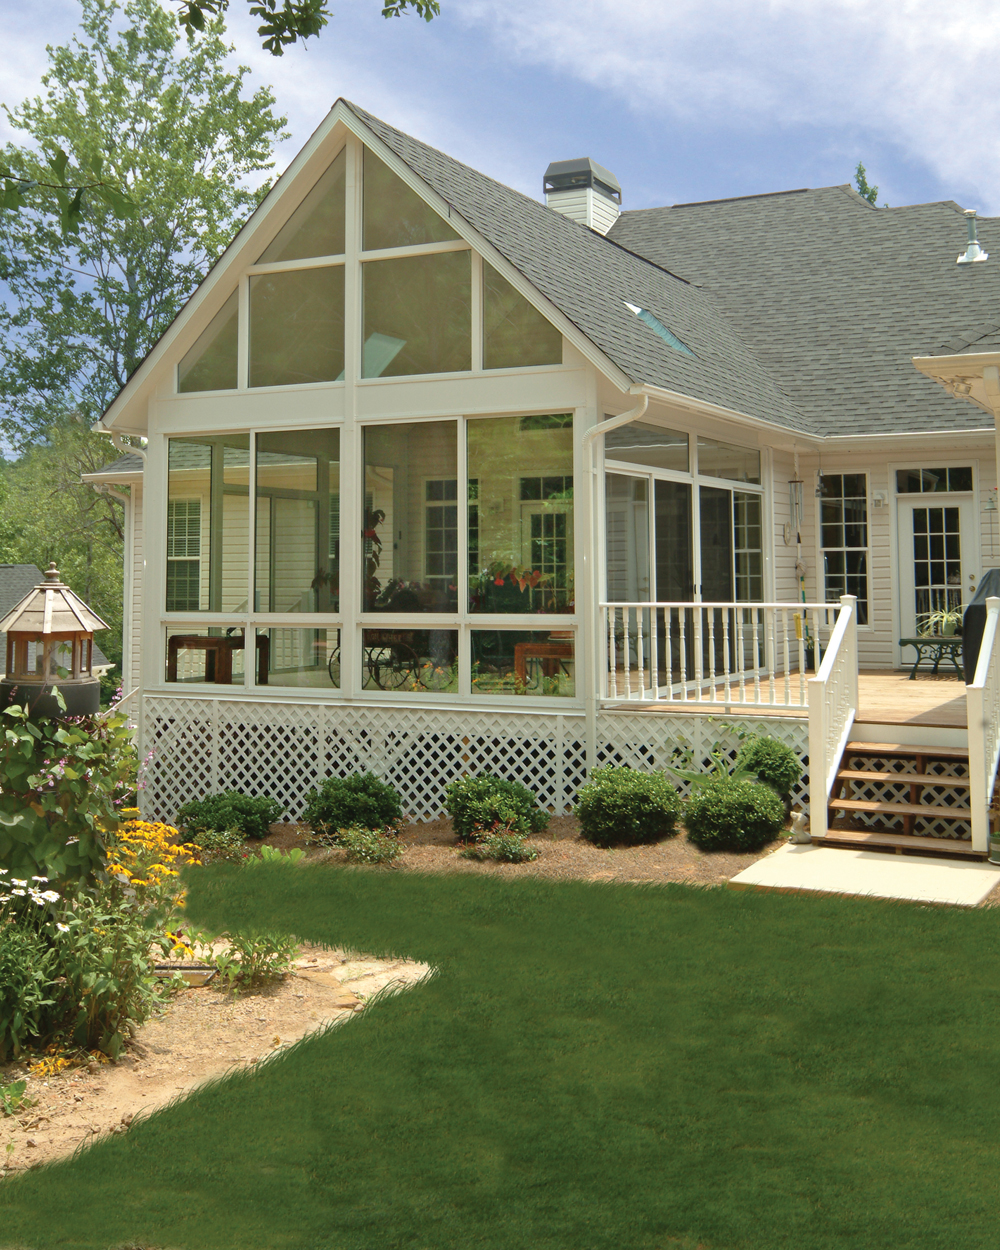 Patio enclosures inc provides five lessons for building for House sunroom